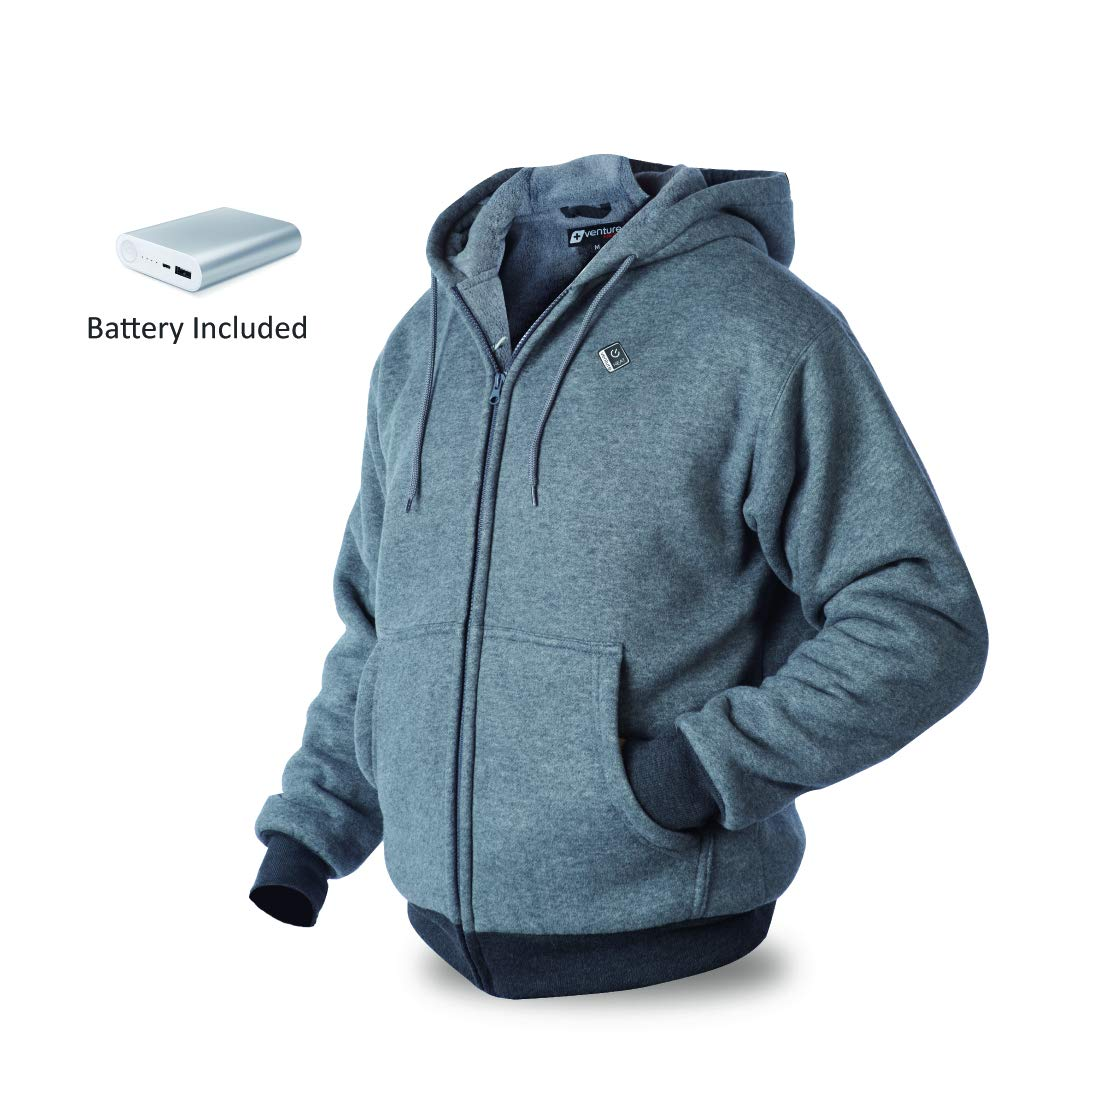 7beace475c130 Unisex-Adult 5V USB Power Bank Battery Heated Hoodie (Black, Medium ...